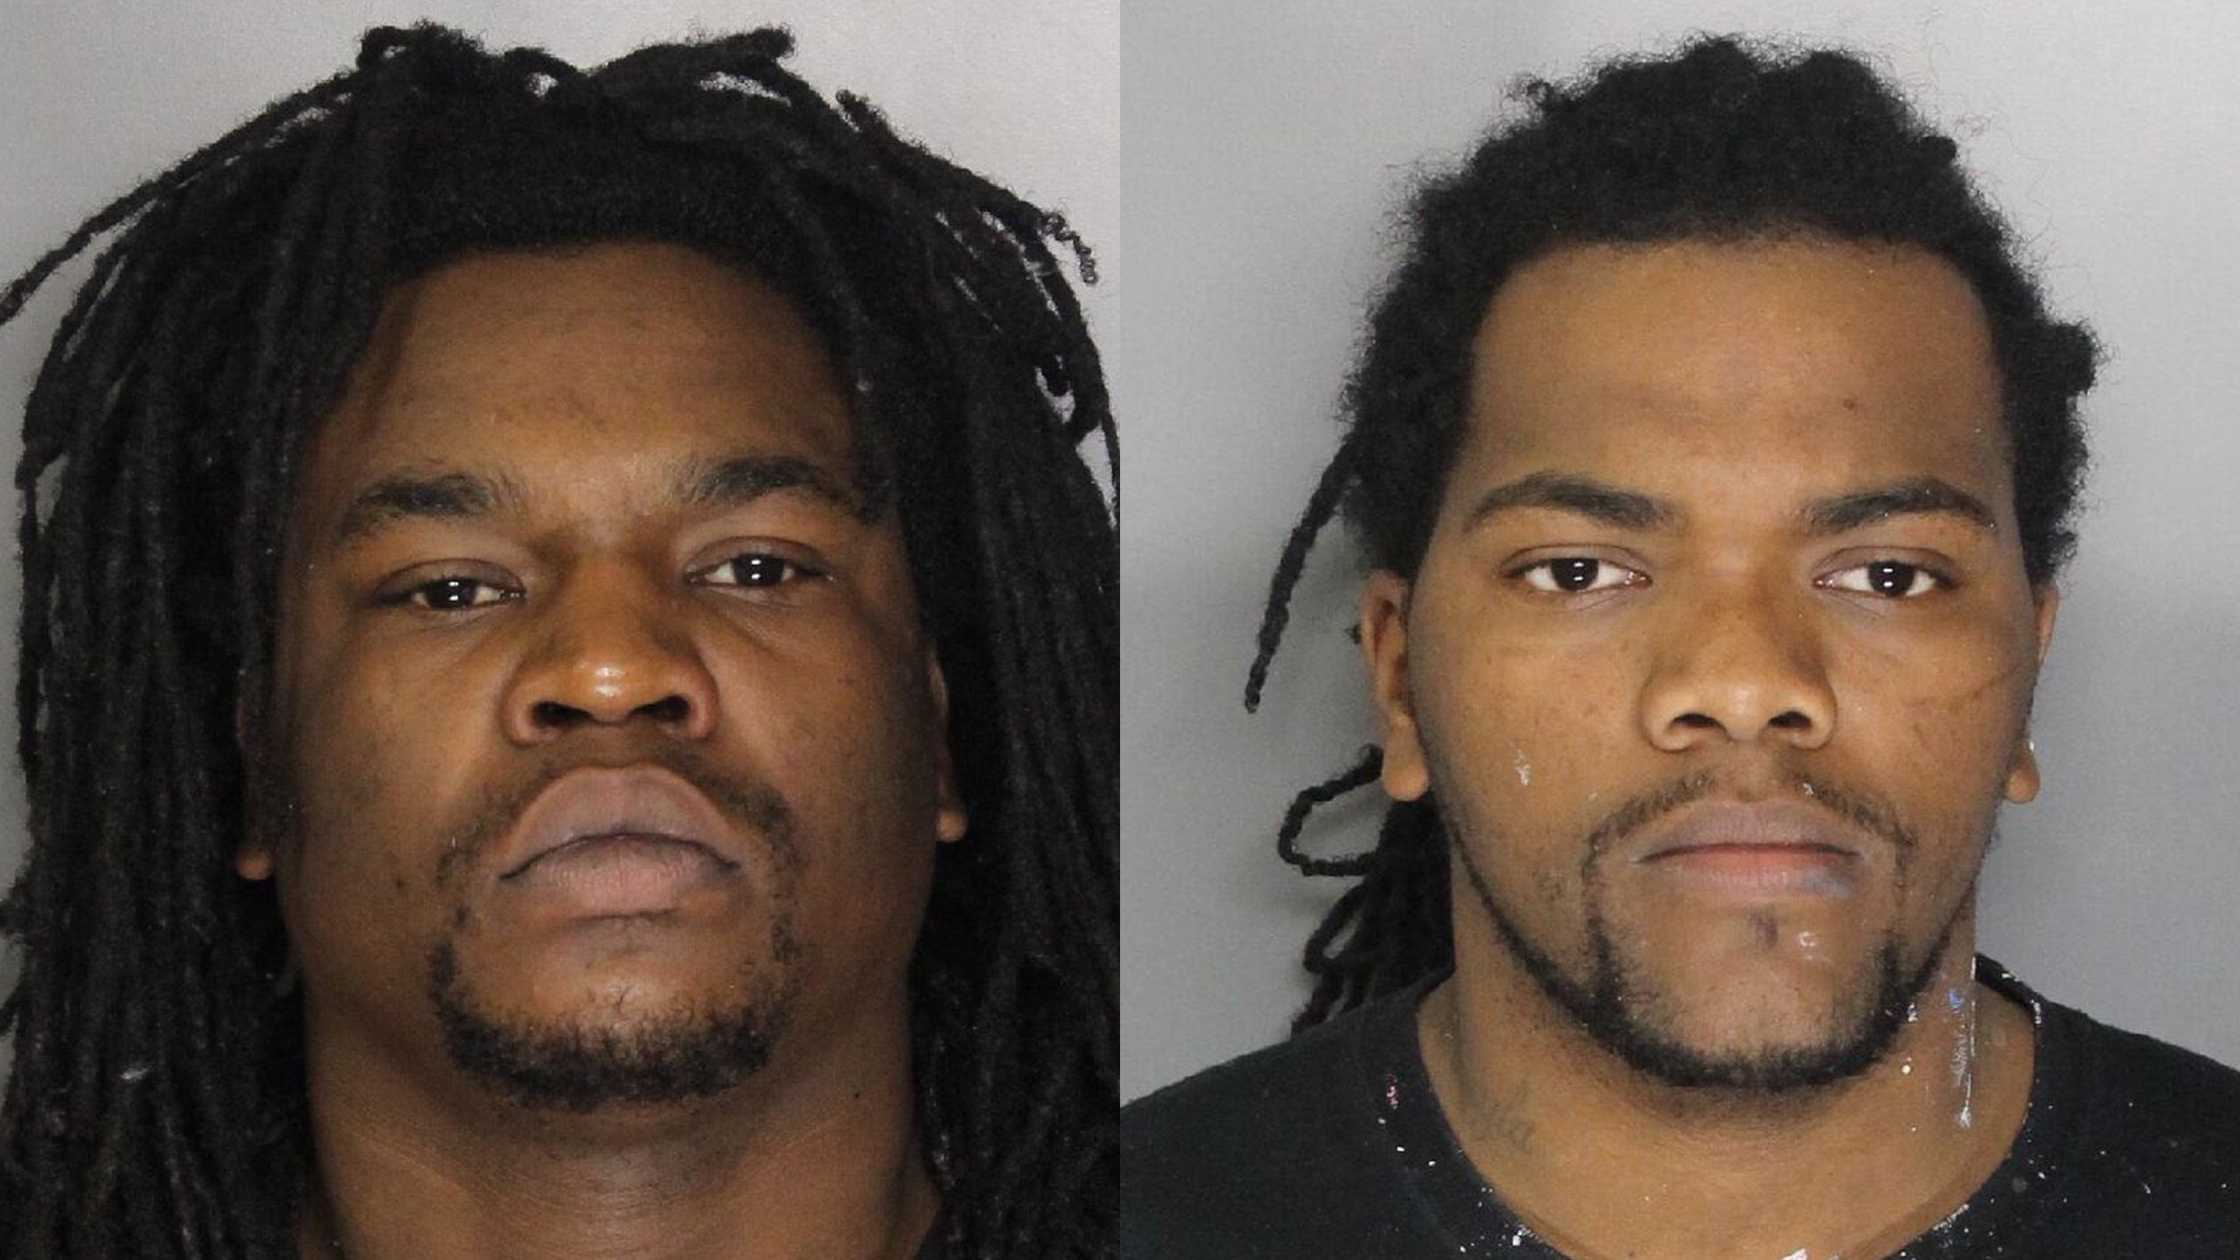 Two suspects were arrested in connection to the murder of 38-year-old Sungaya Fleming, the Sacramento County Sheriff's Office said. Jan. 7, 2017